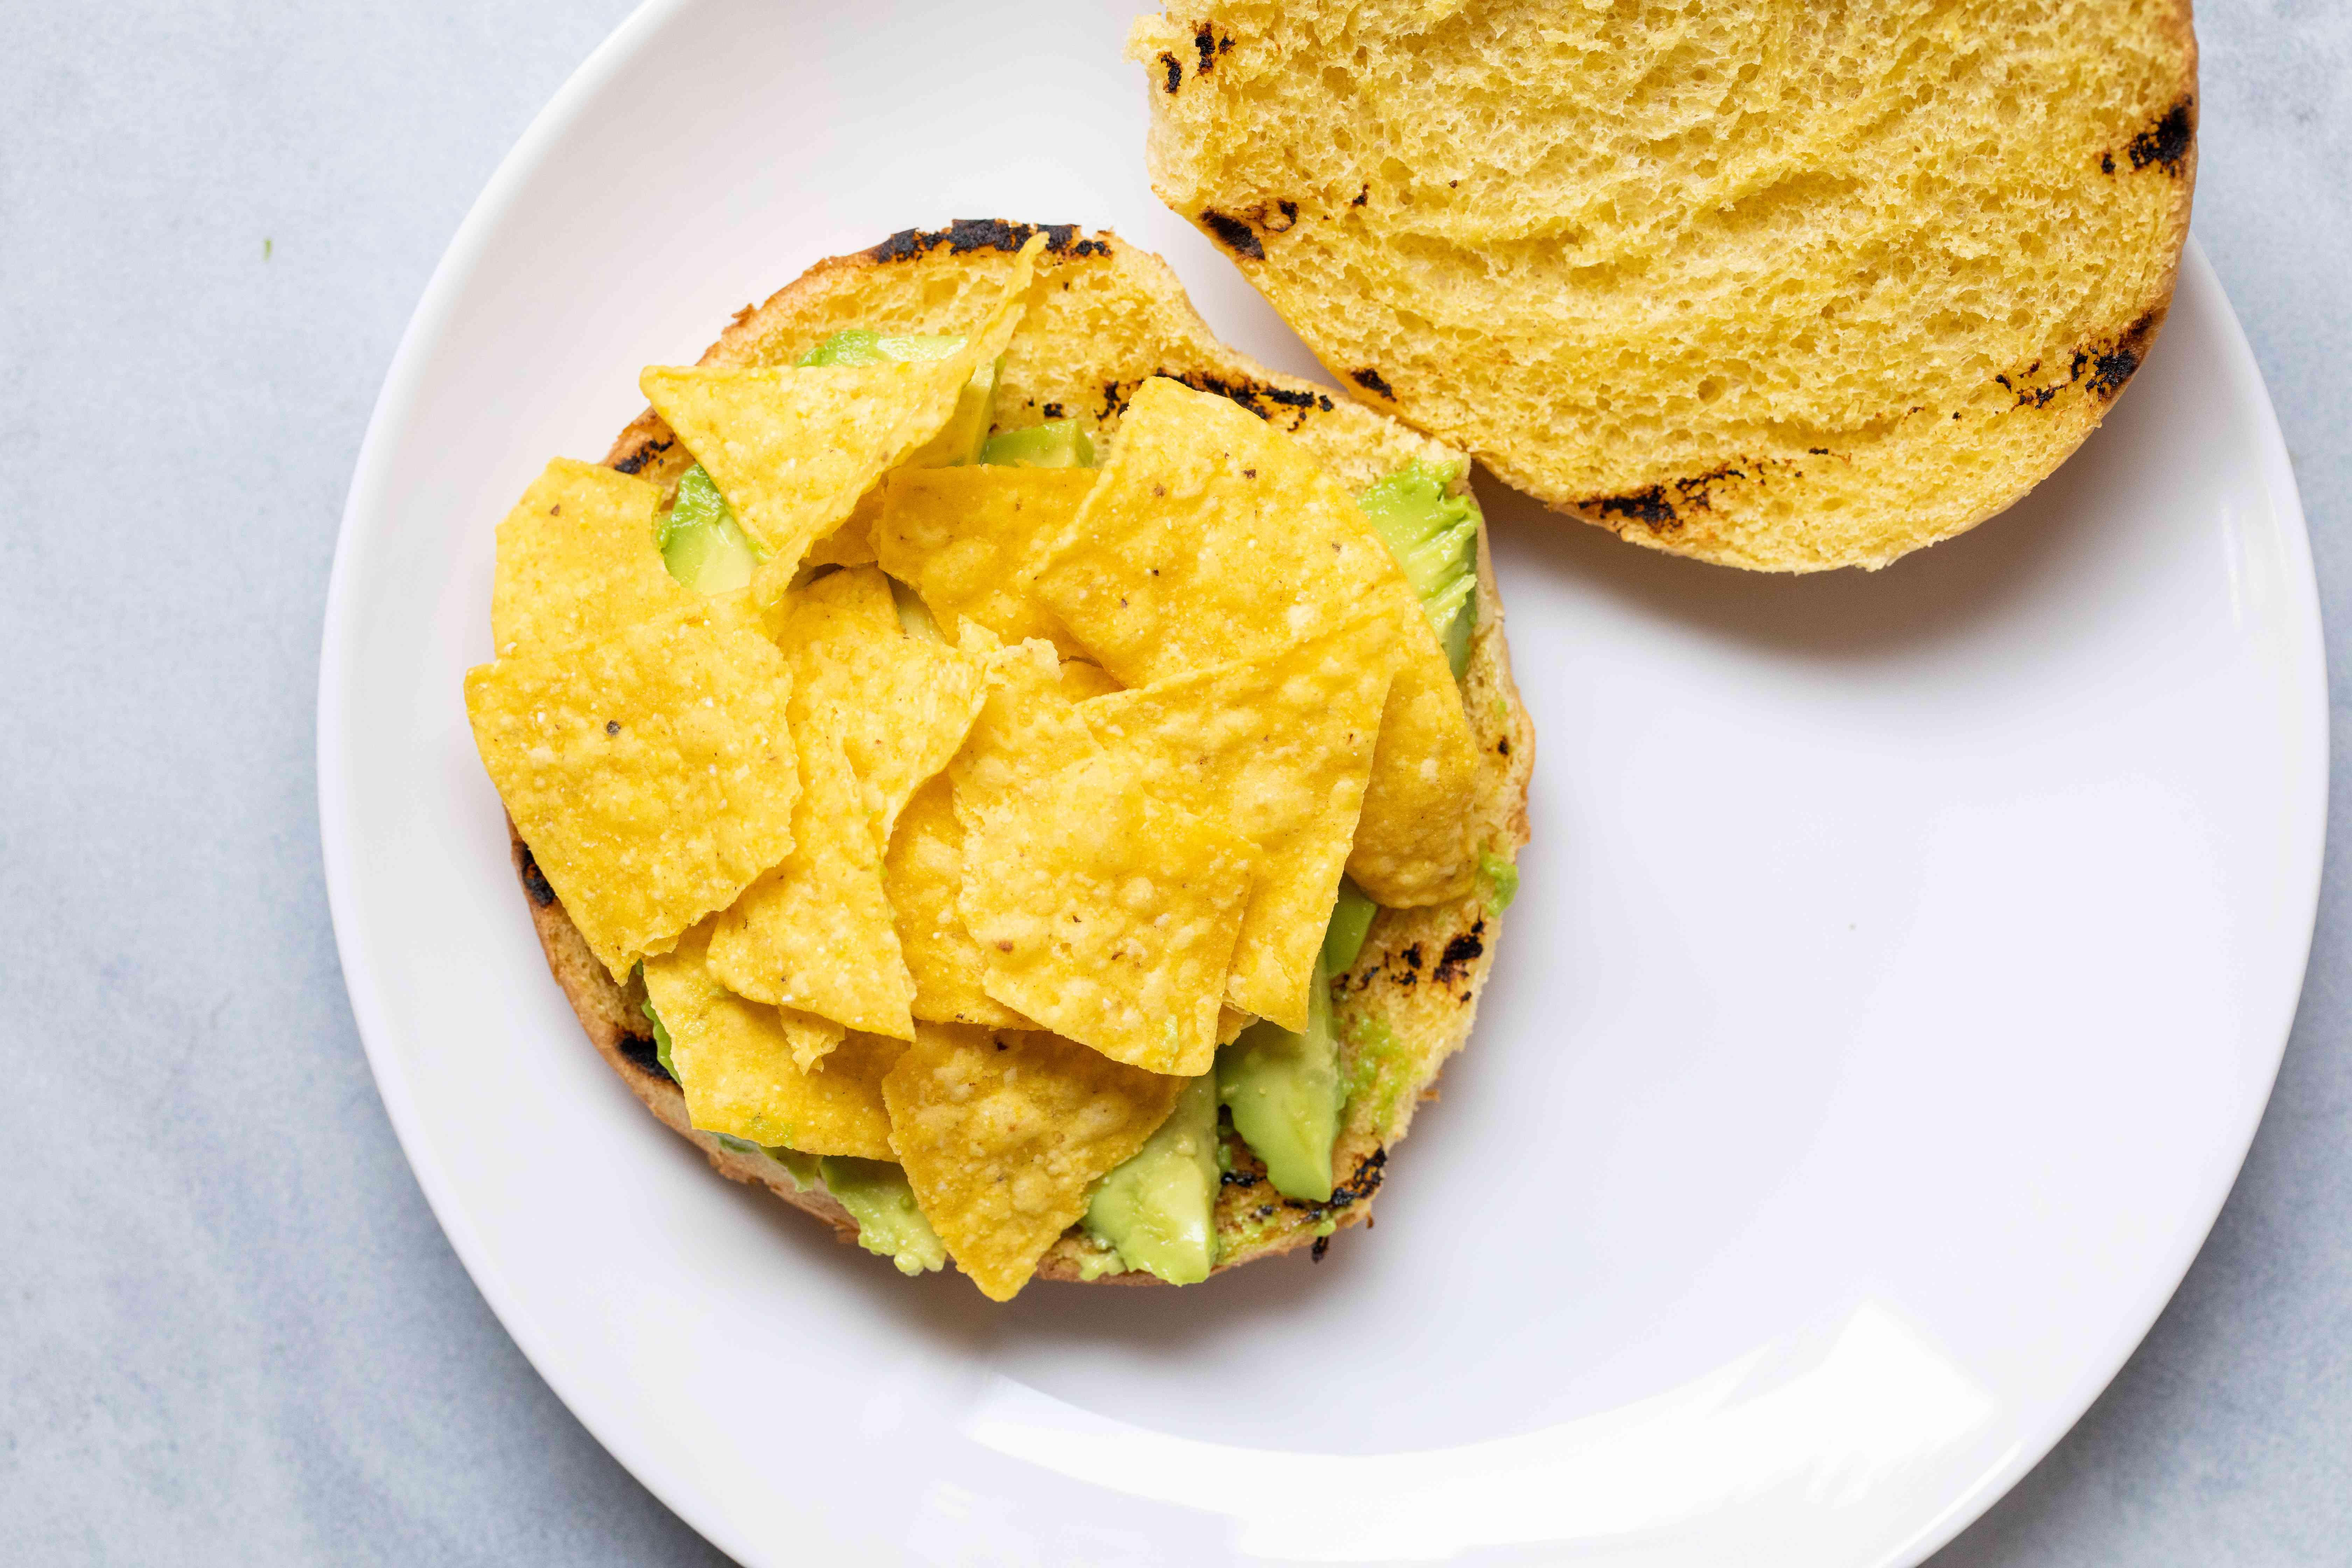 A toasted bun topped with avocado and tortilla chips on a plate to make an Avocado burger.